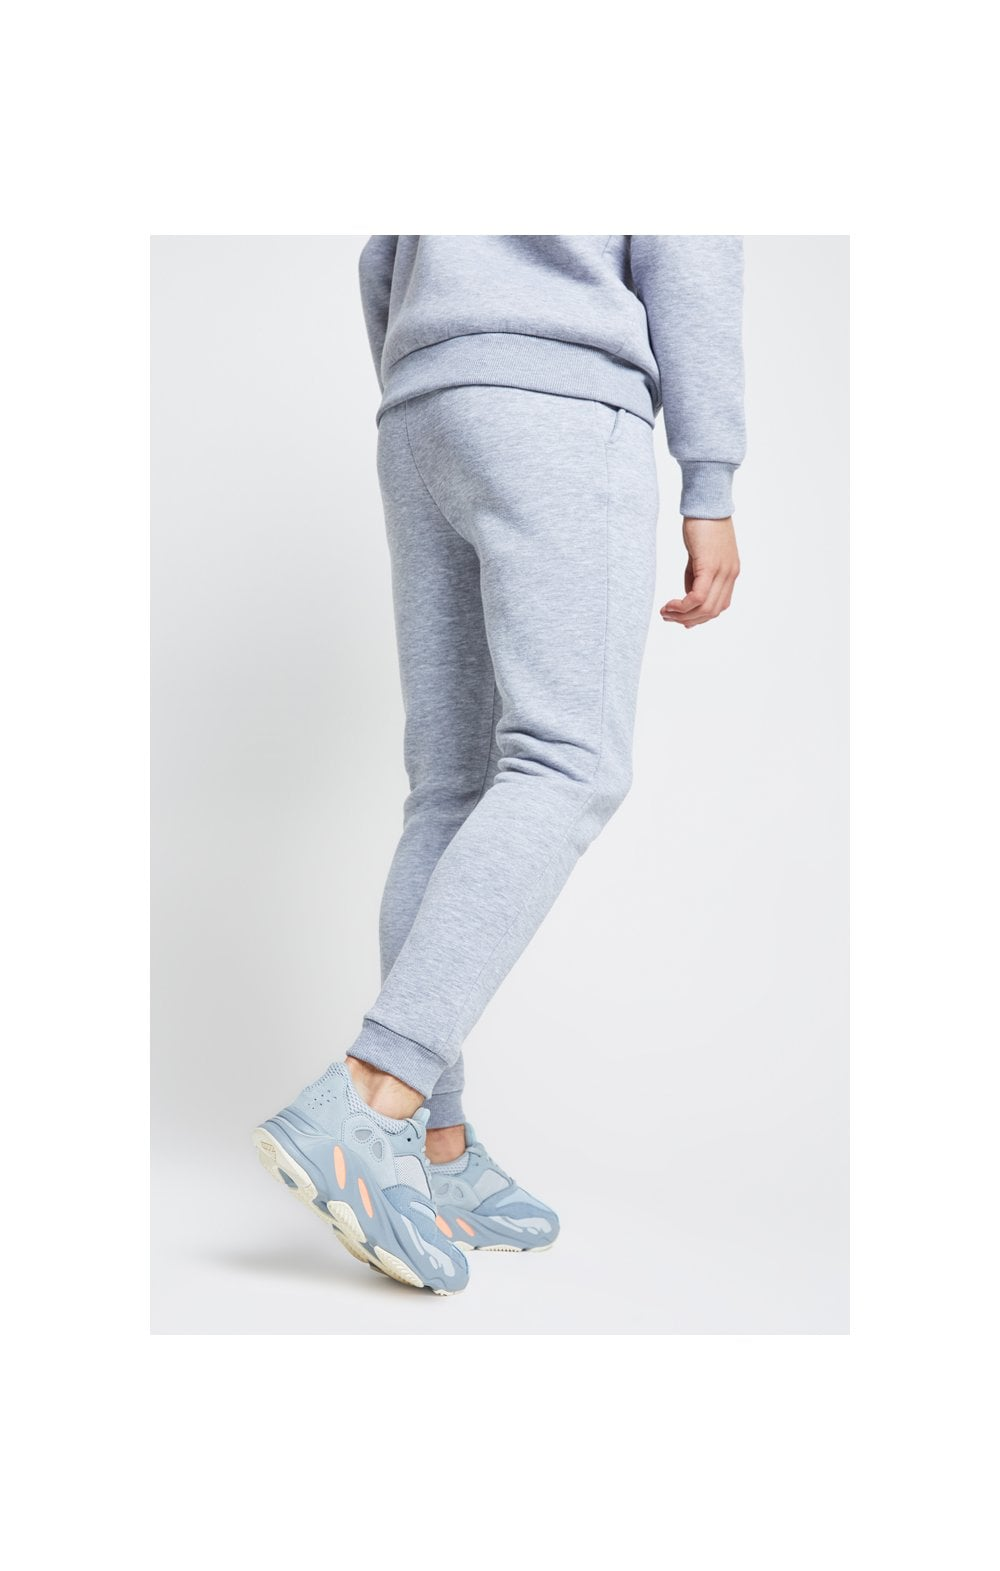 Illusive London Joggers – Grey Marl (2)